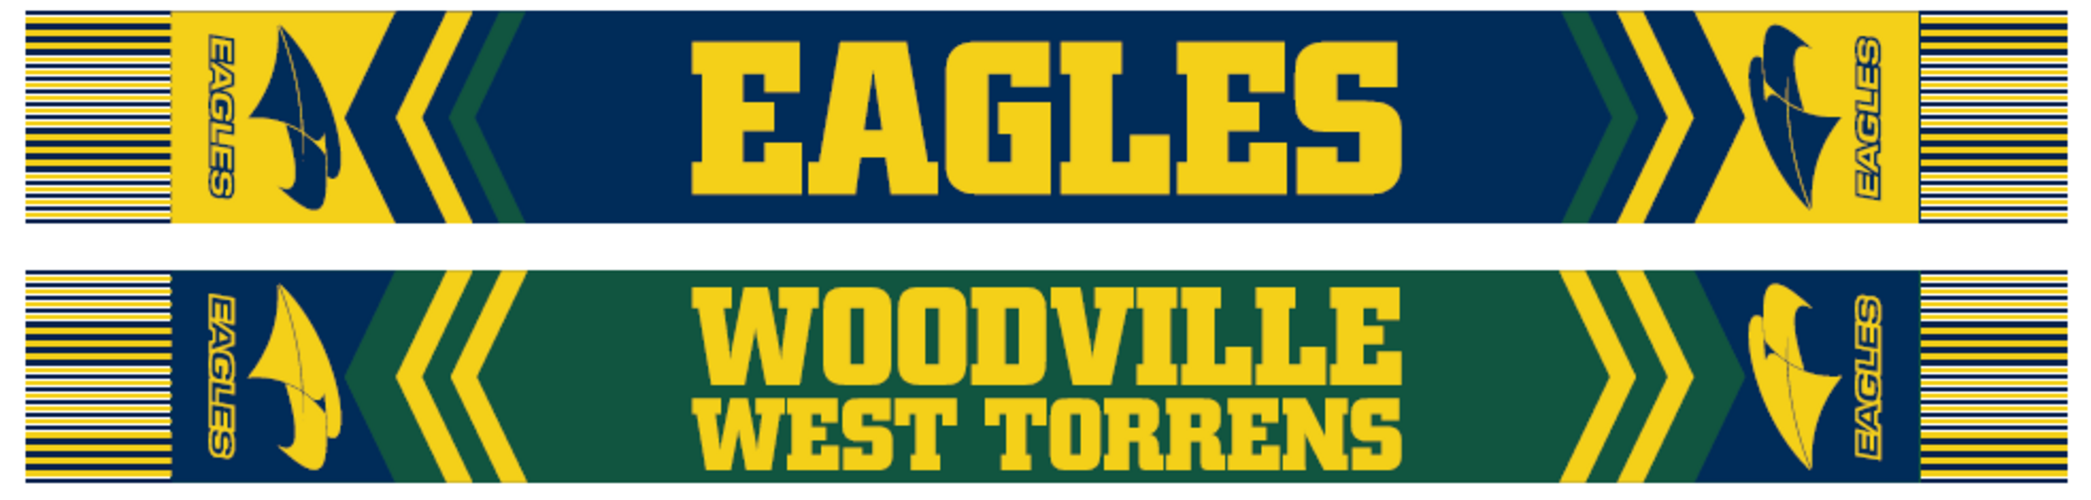 Eagles Double Sided Scarf